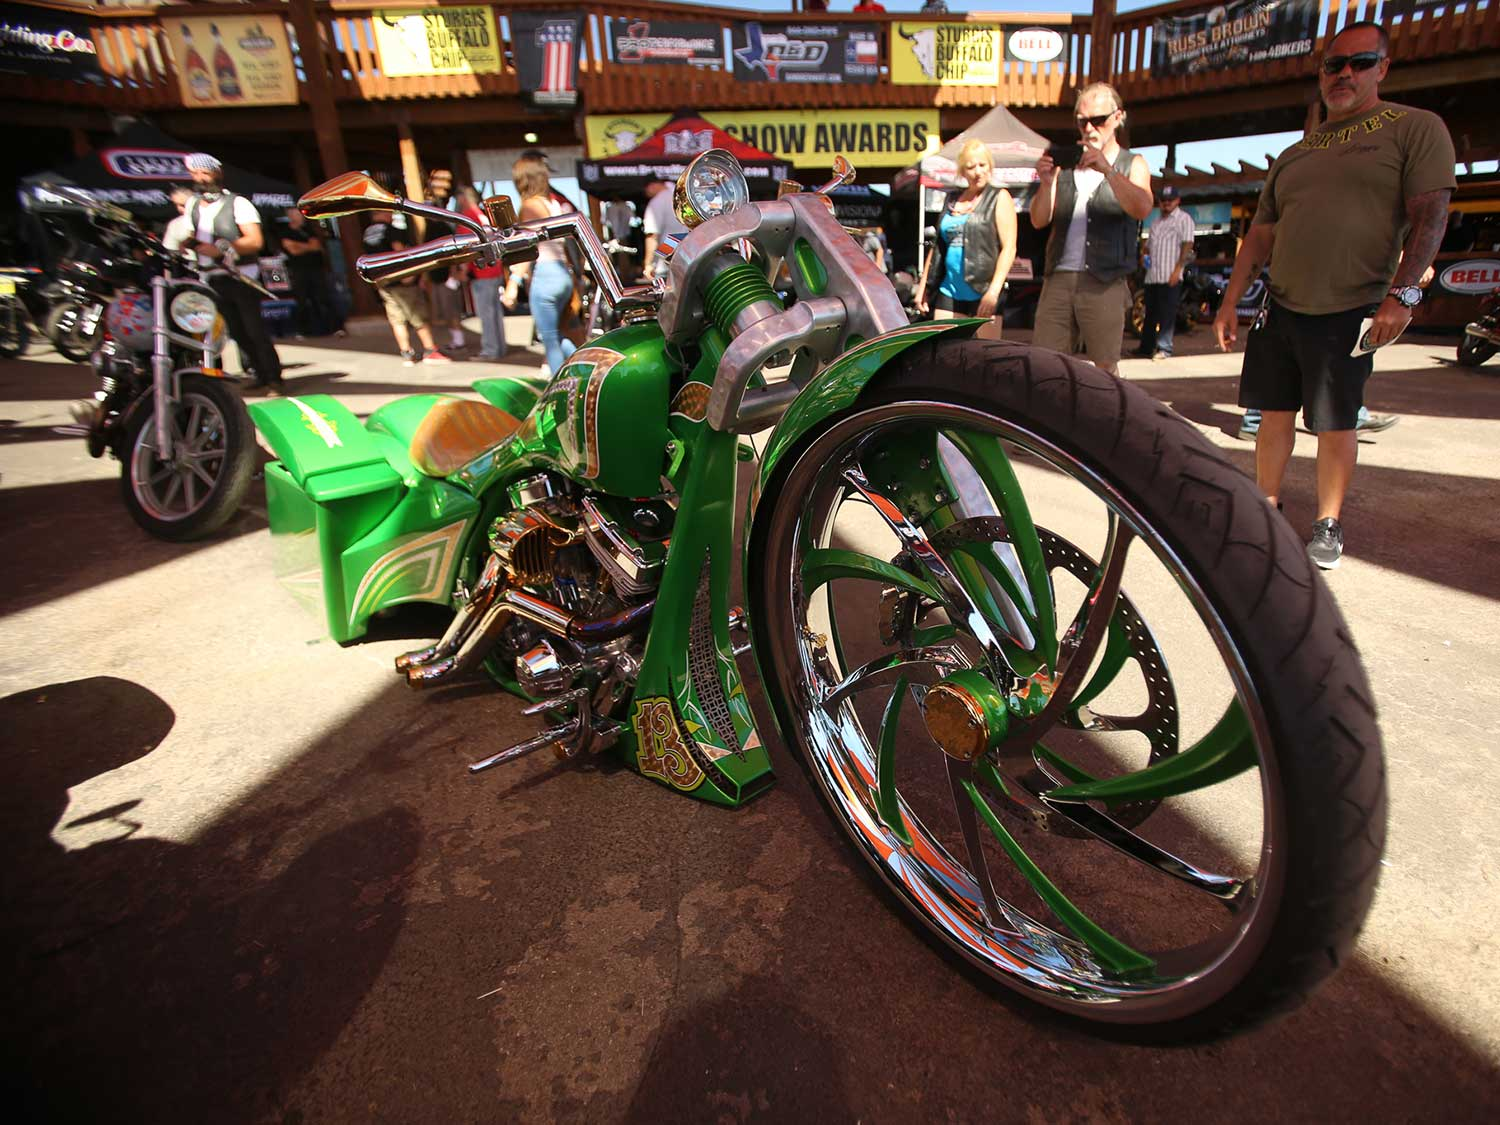 Custom green motorcycle at Sturgis 2020